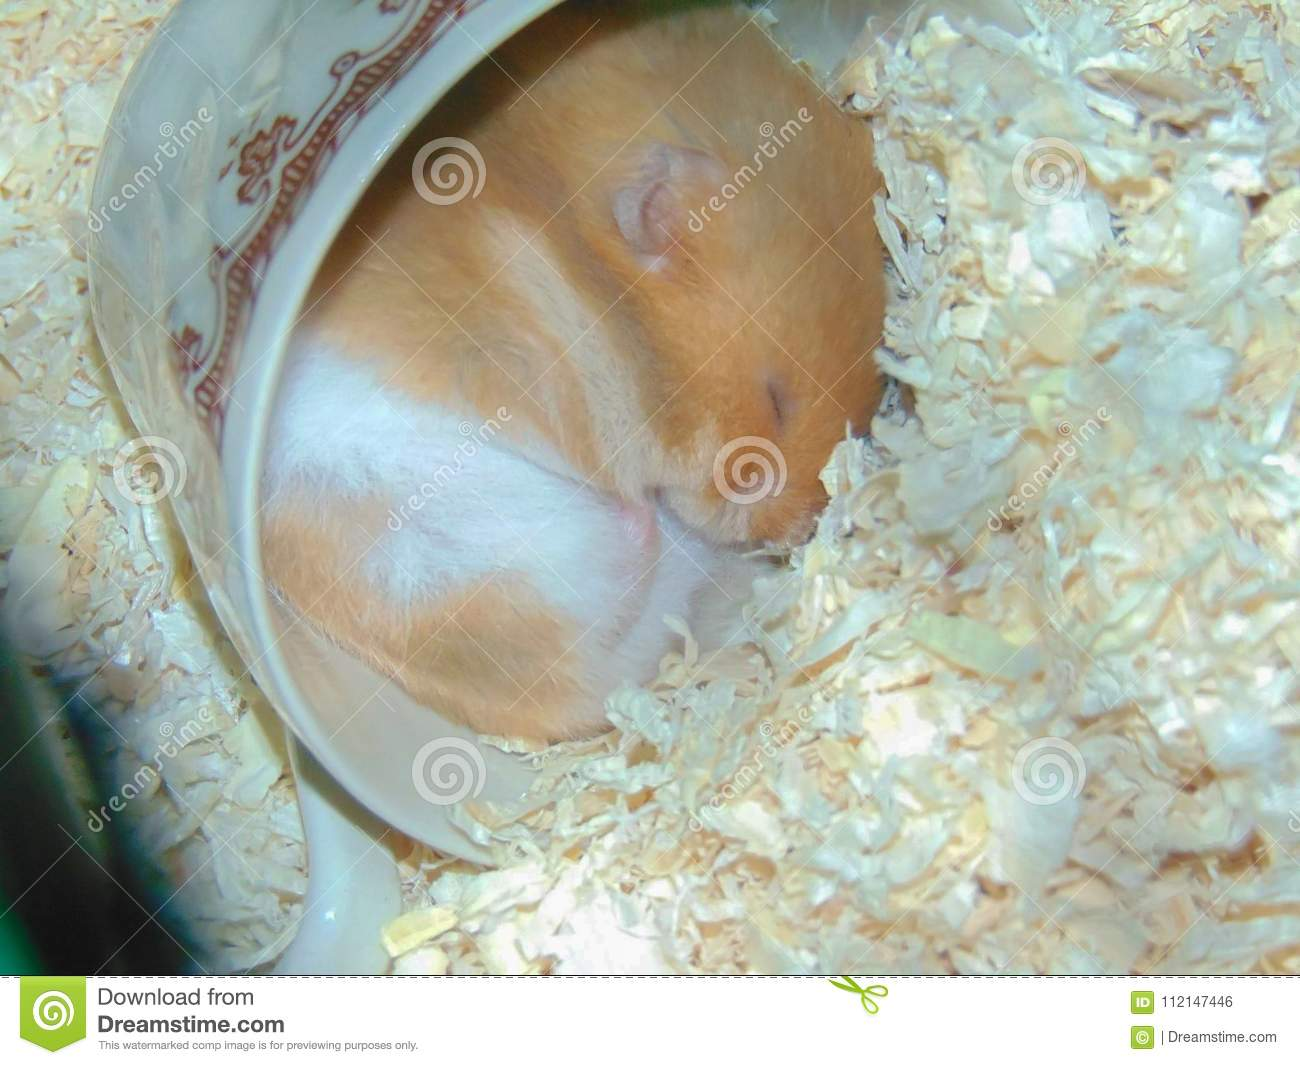 Hamster sleeping in a cup stock photo  Image of coffee